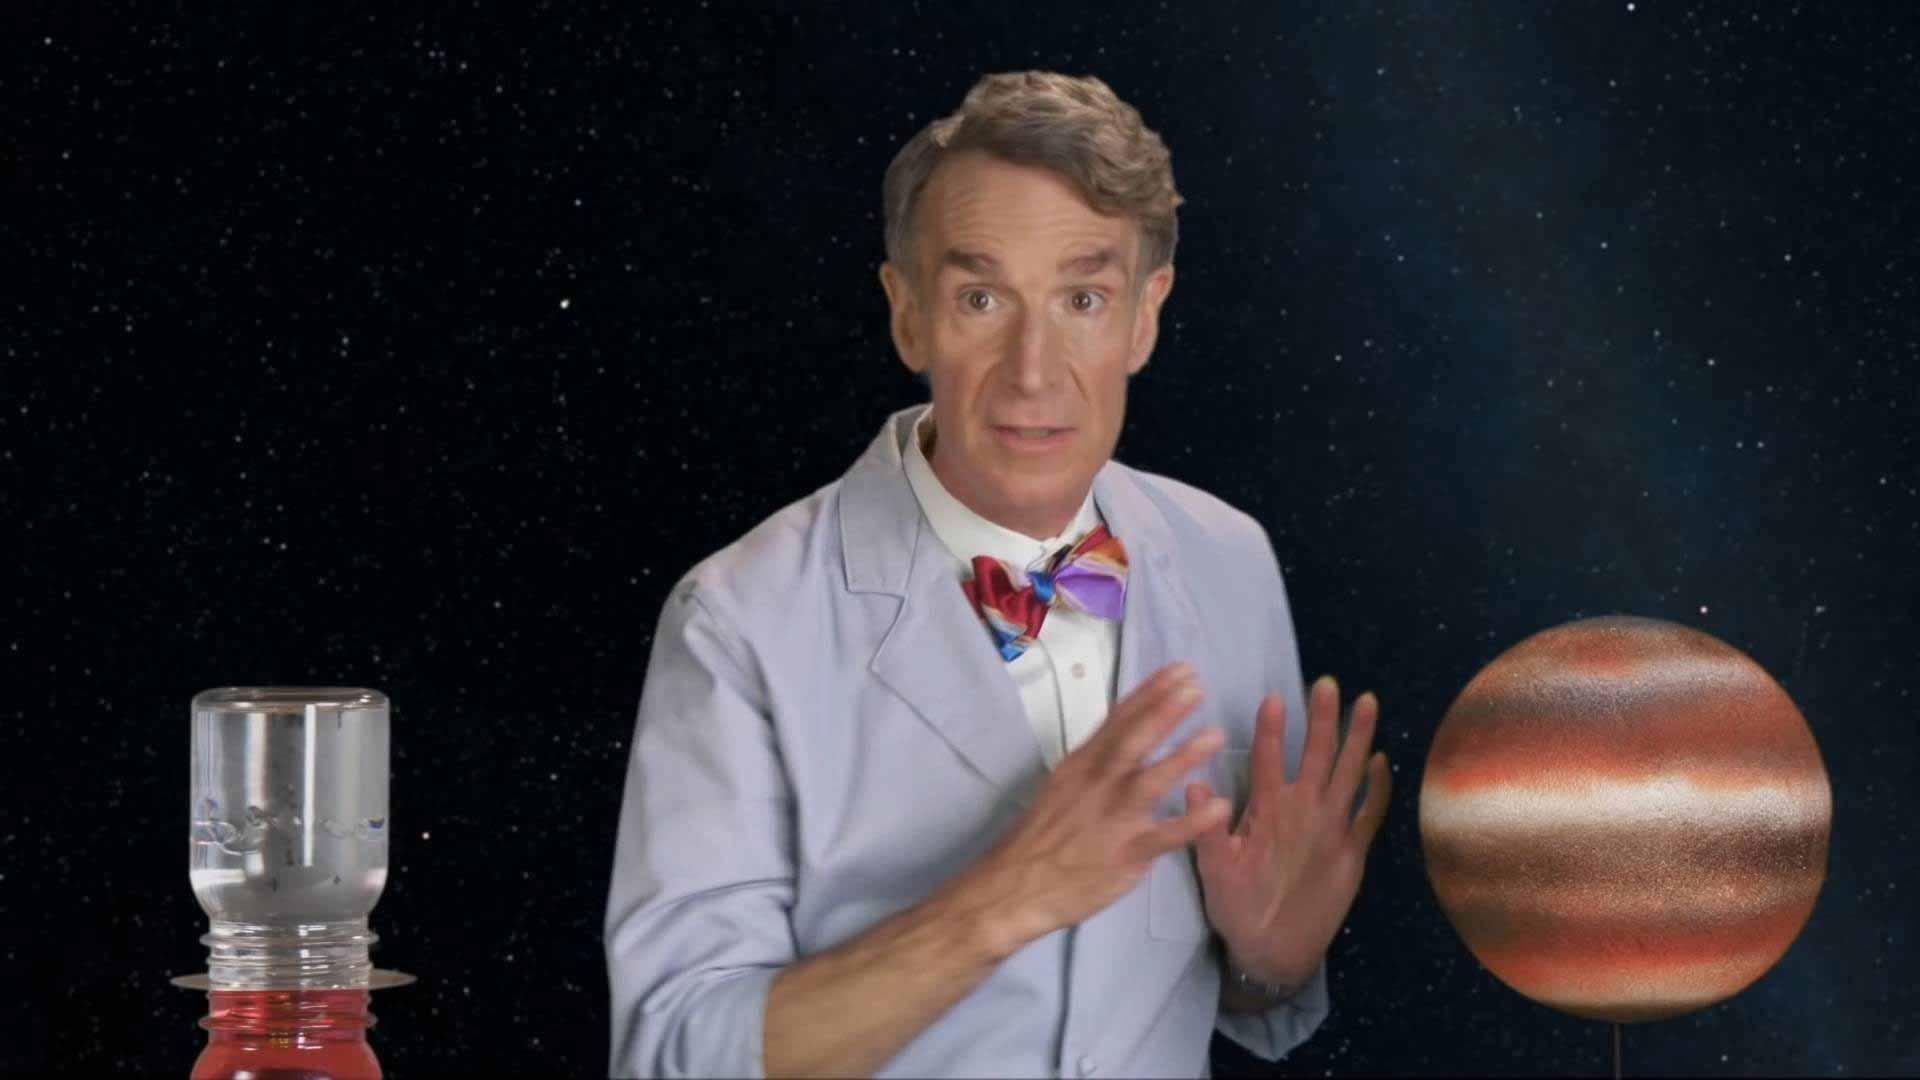 Home Demos - Official Website of Bill Nye The Science Guy